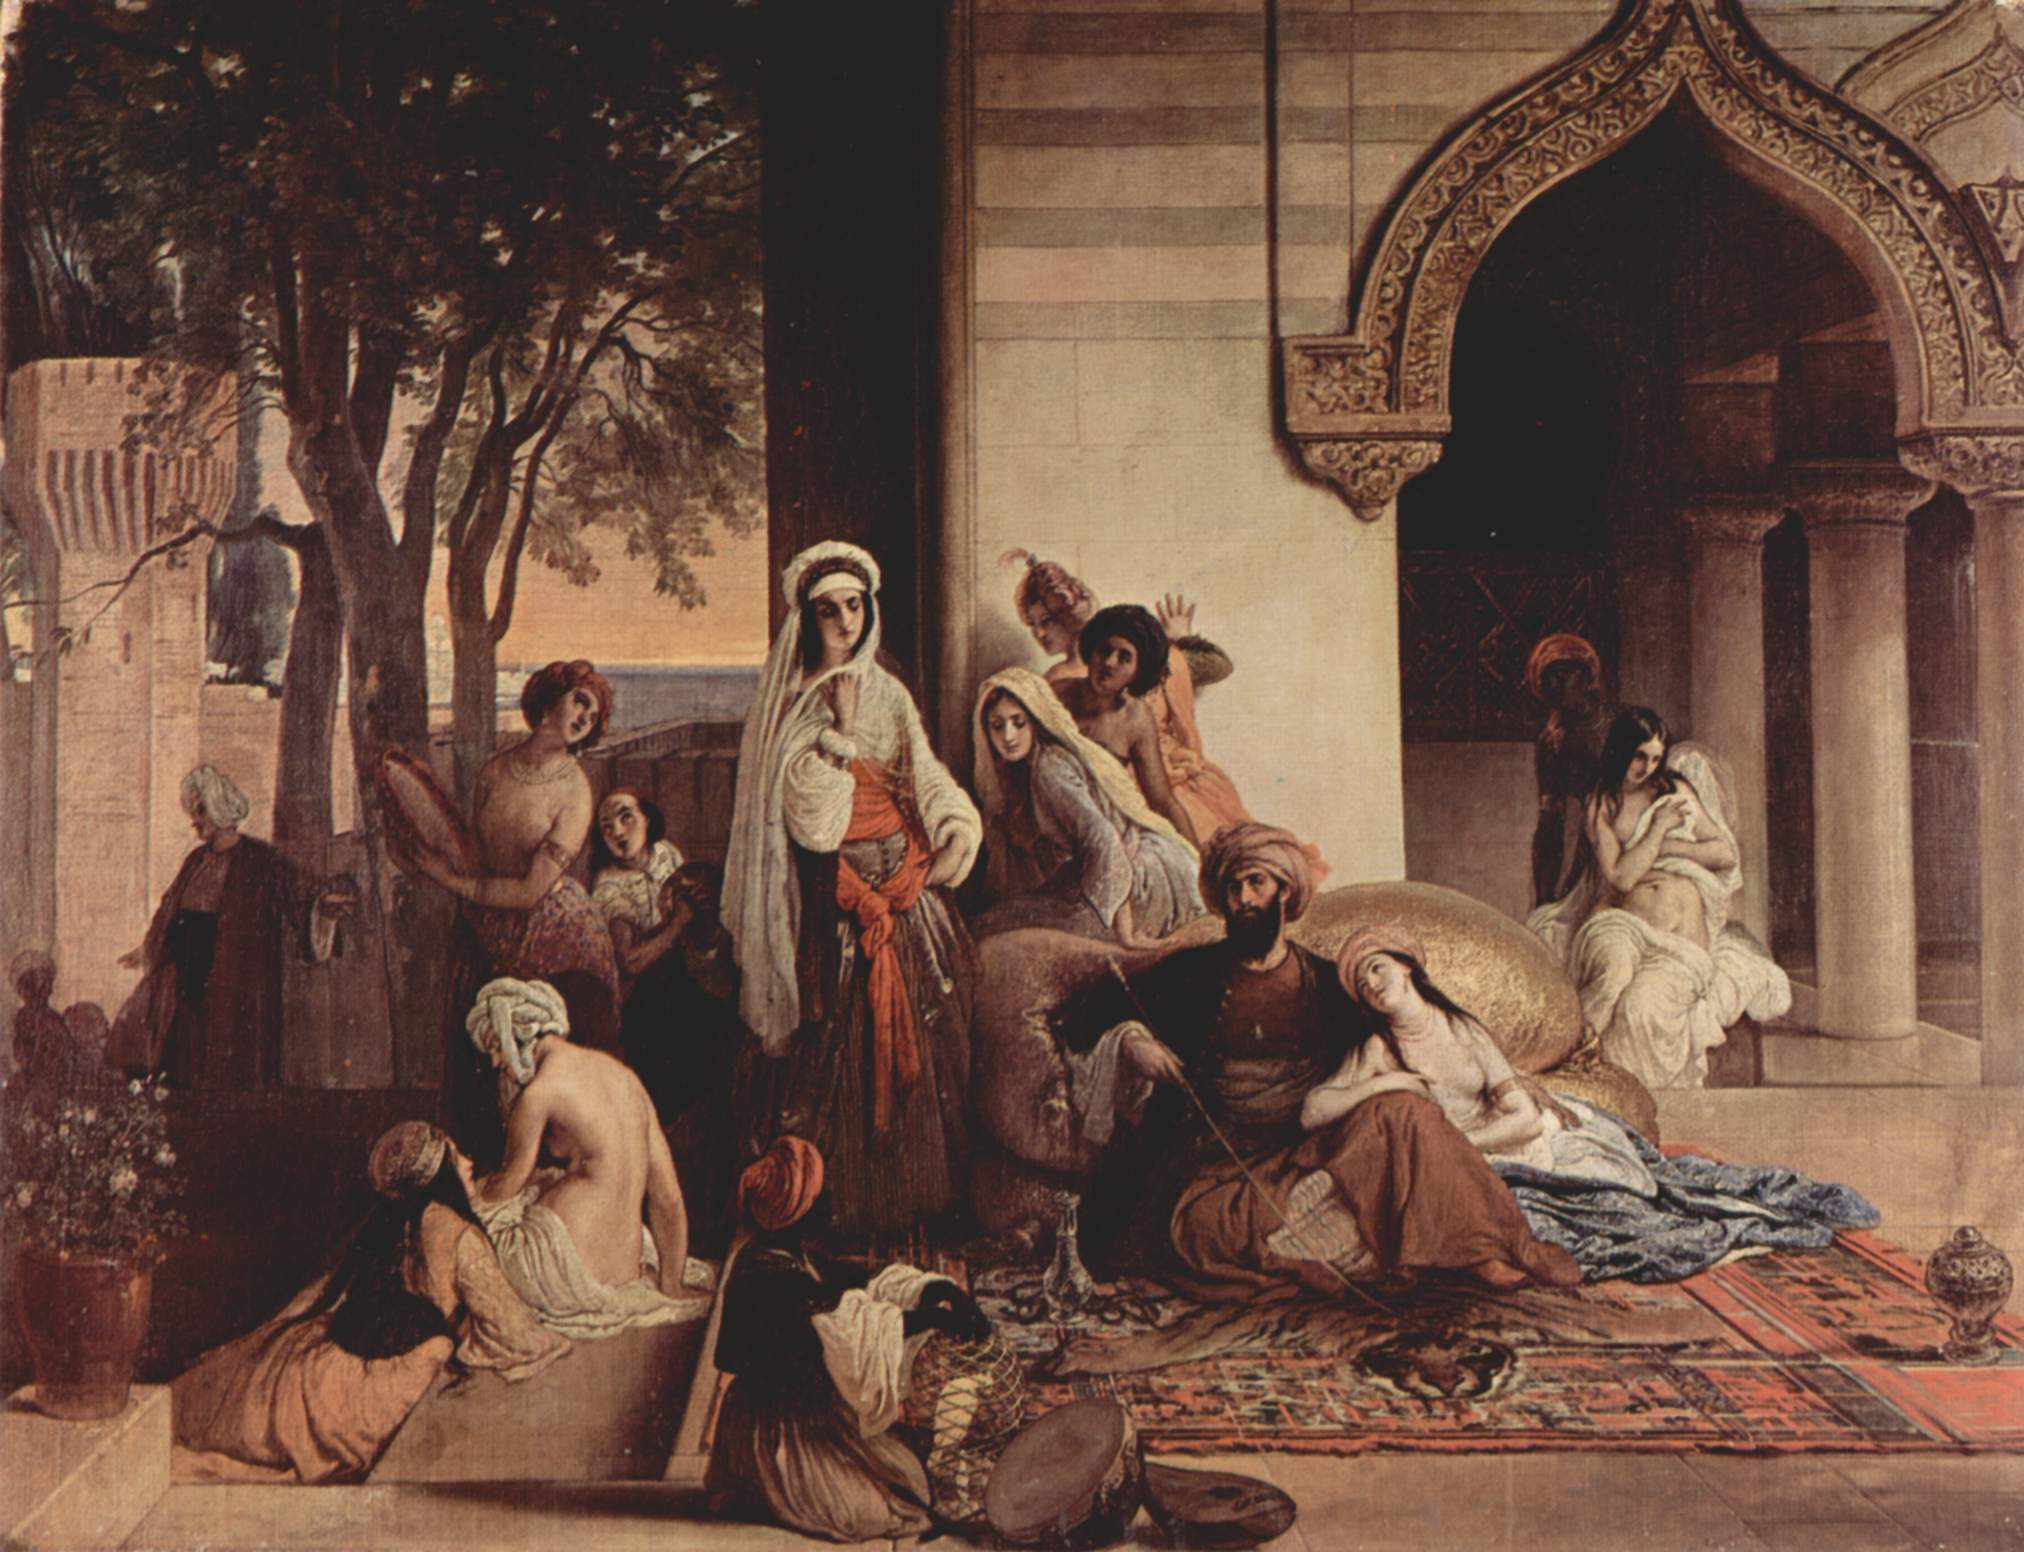 Francesco Hayez New Favorite in Harem